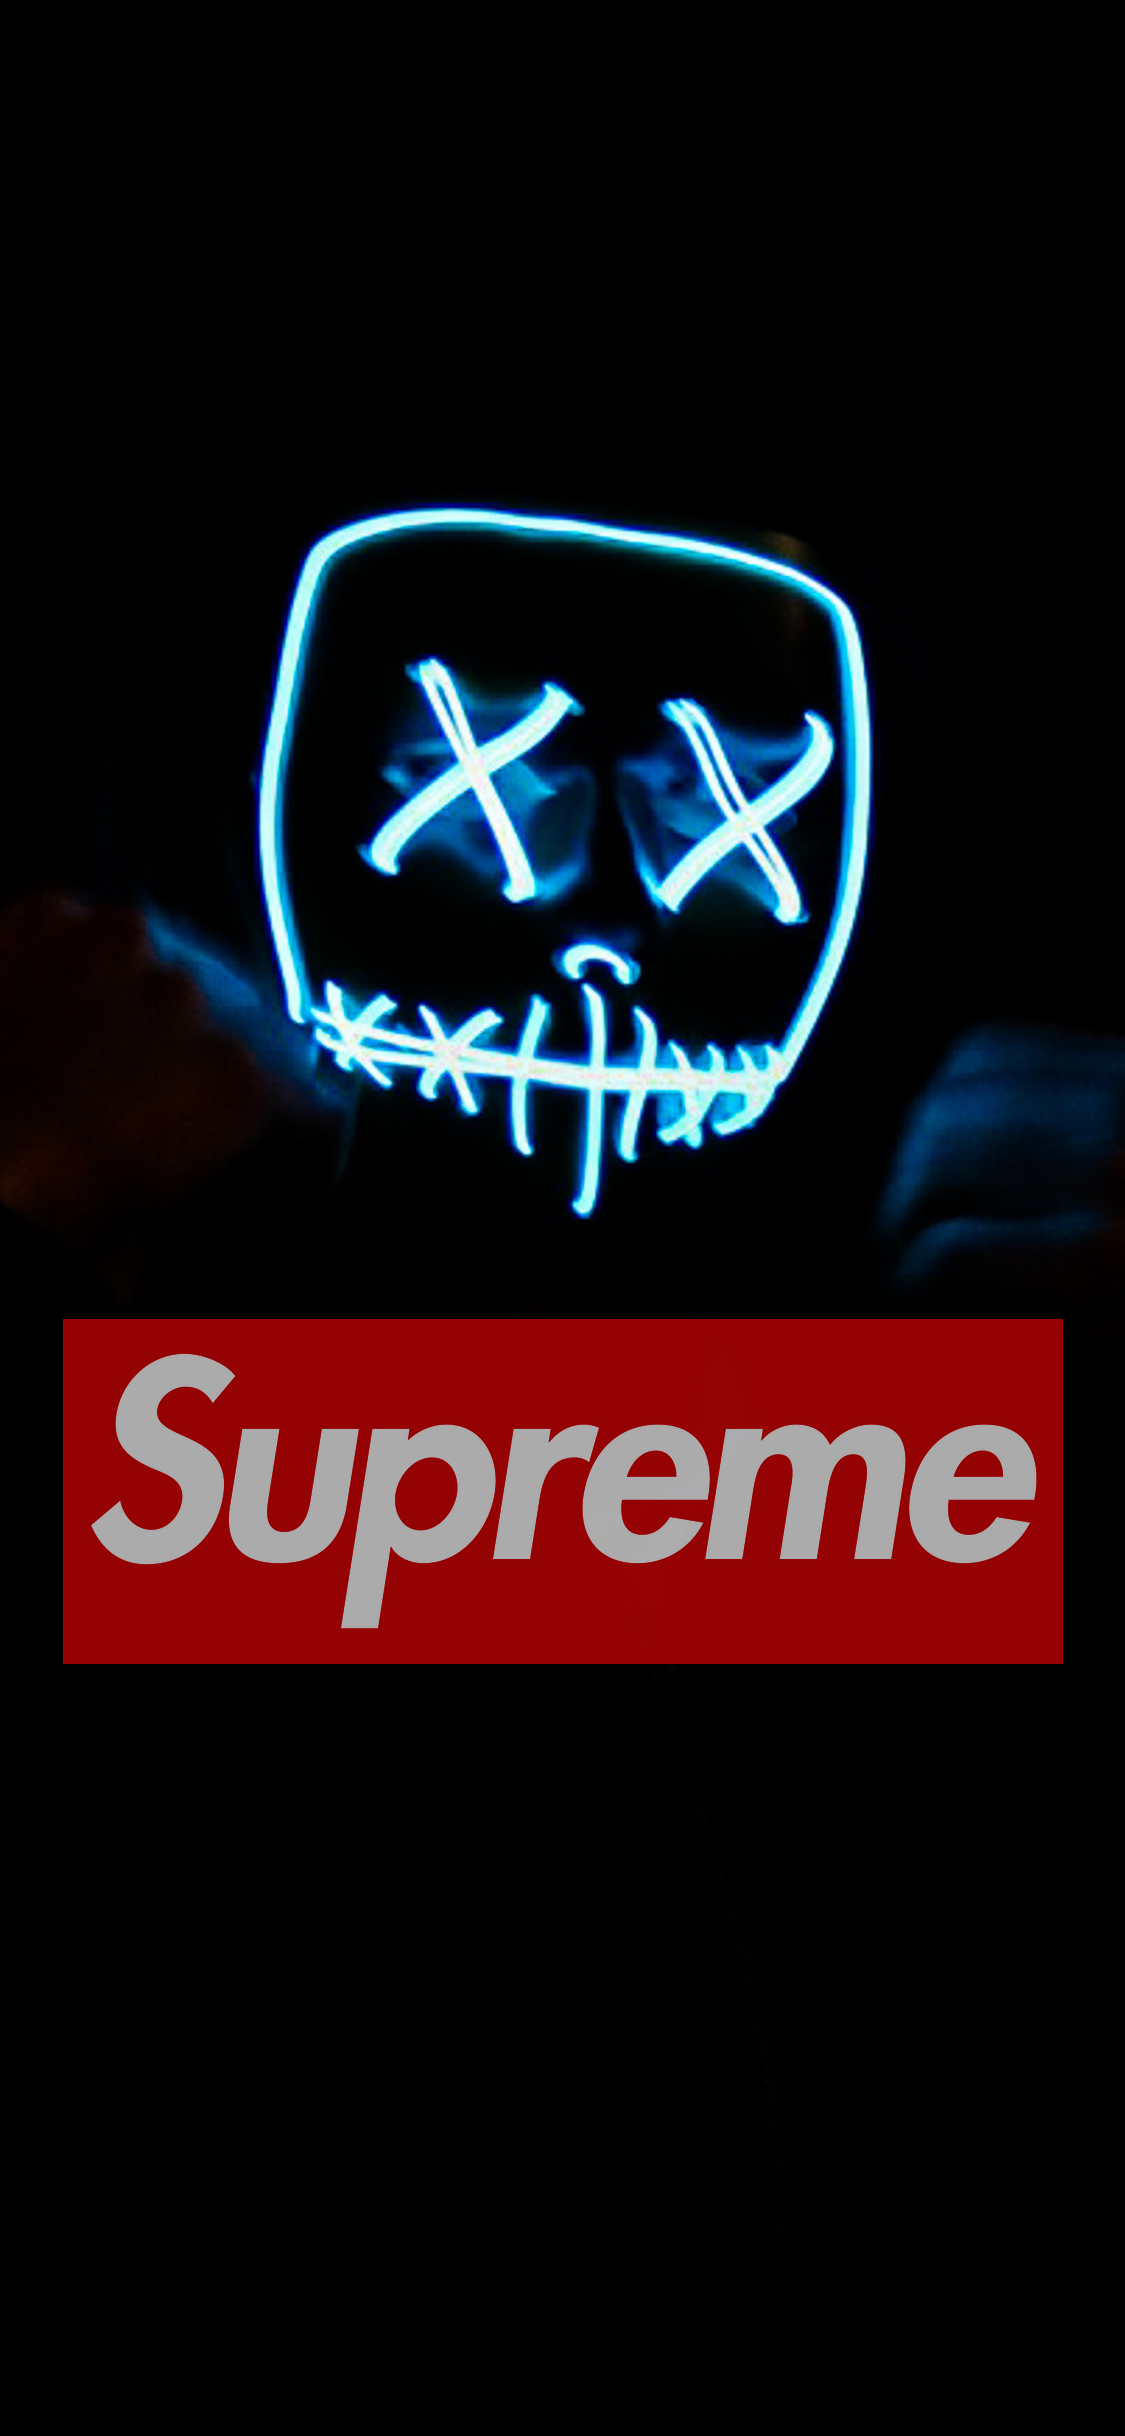 Supreme Cool Wallpaper Iphone Supreme Wallpaper Supreme Iphone Wallpaper Cool Wallpapers For Phones